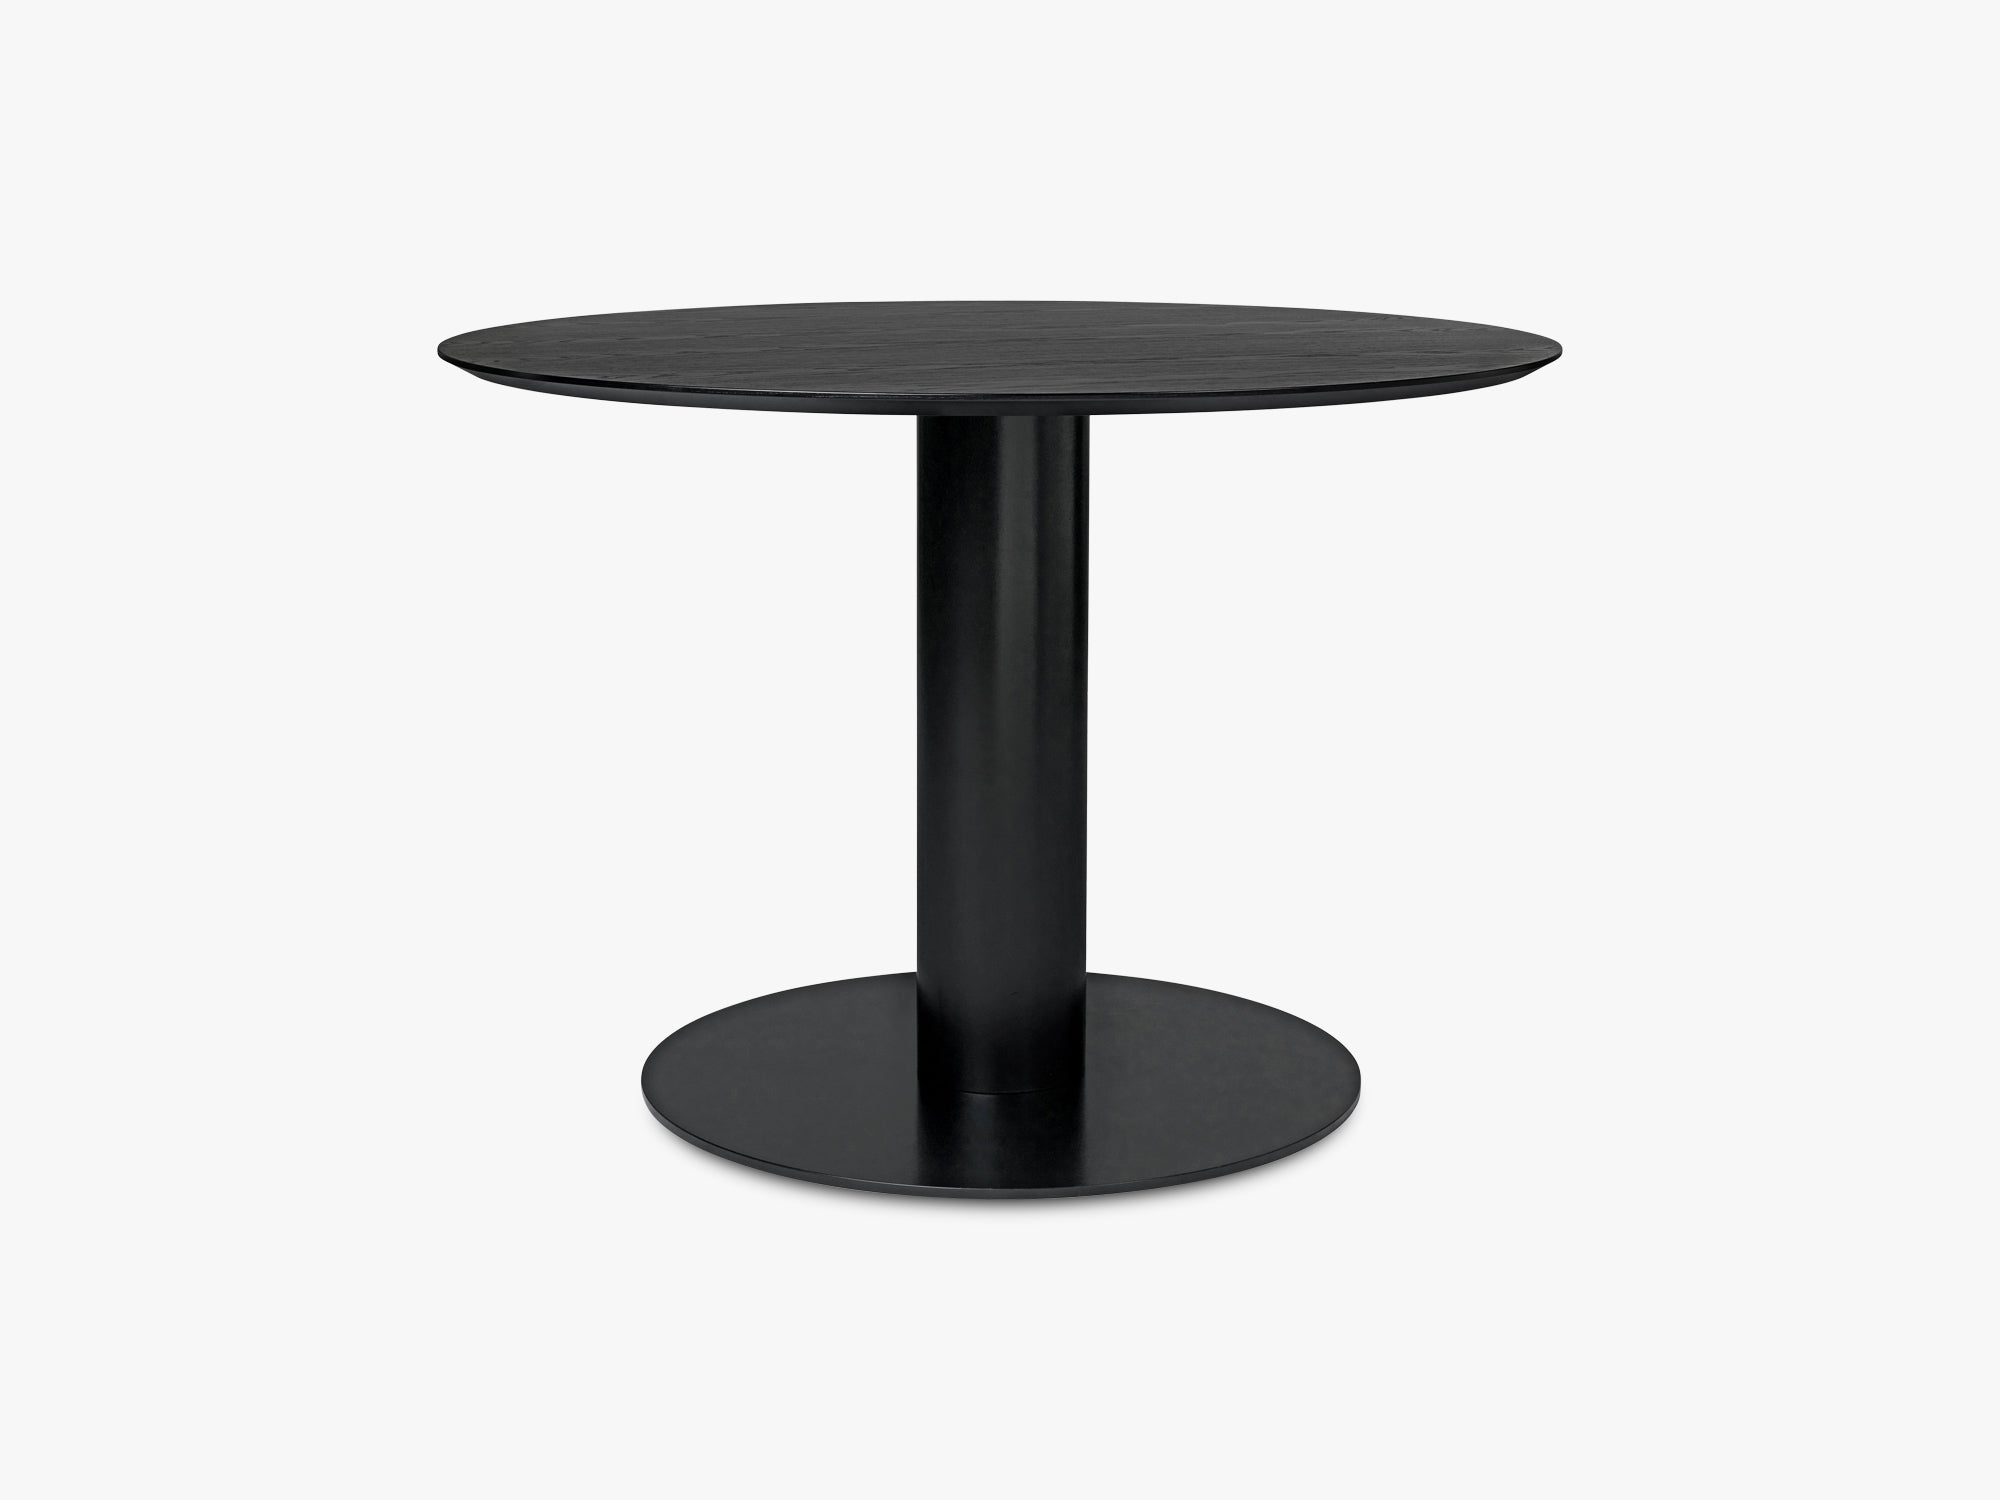 GUBI 2.0 Dining Table - Round - Ø110 - Black base, Black Stained Ash top fra GUBI